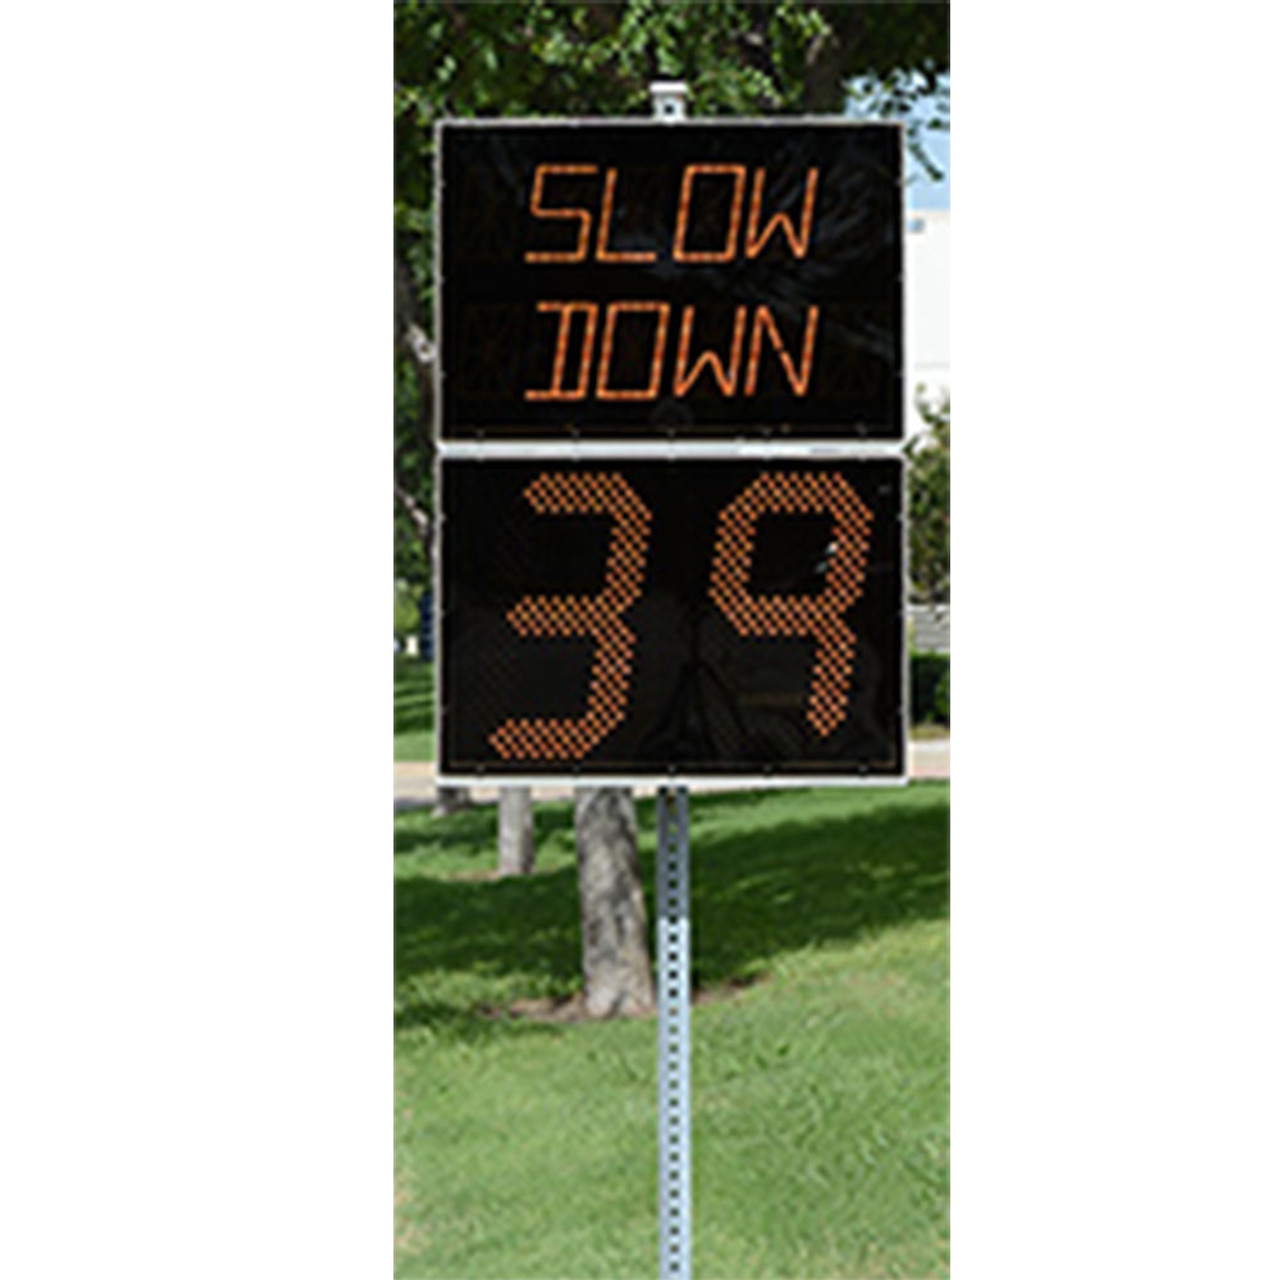 Stalker Pole Mounted Message Display Board and Radar Speed Sign (PMMD), Traffic Control, includes Bluetooth, includes 3 preconfigured messages: SLOW DOWN, SCHOOL ZONE, and SPEED LIMIT,  optional Traffic Data Analyst